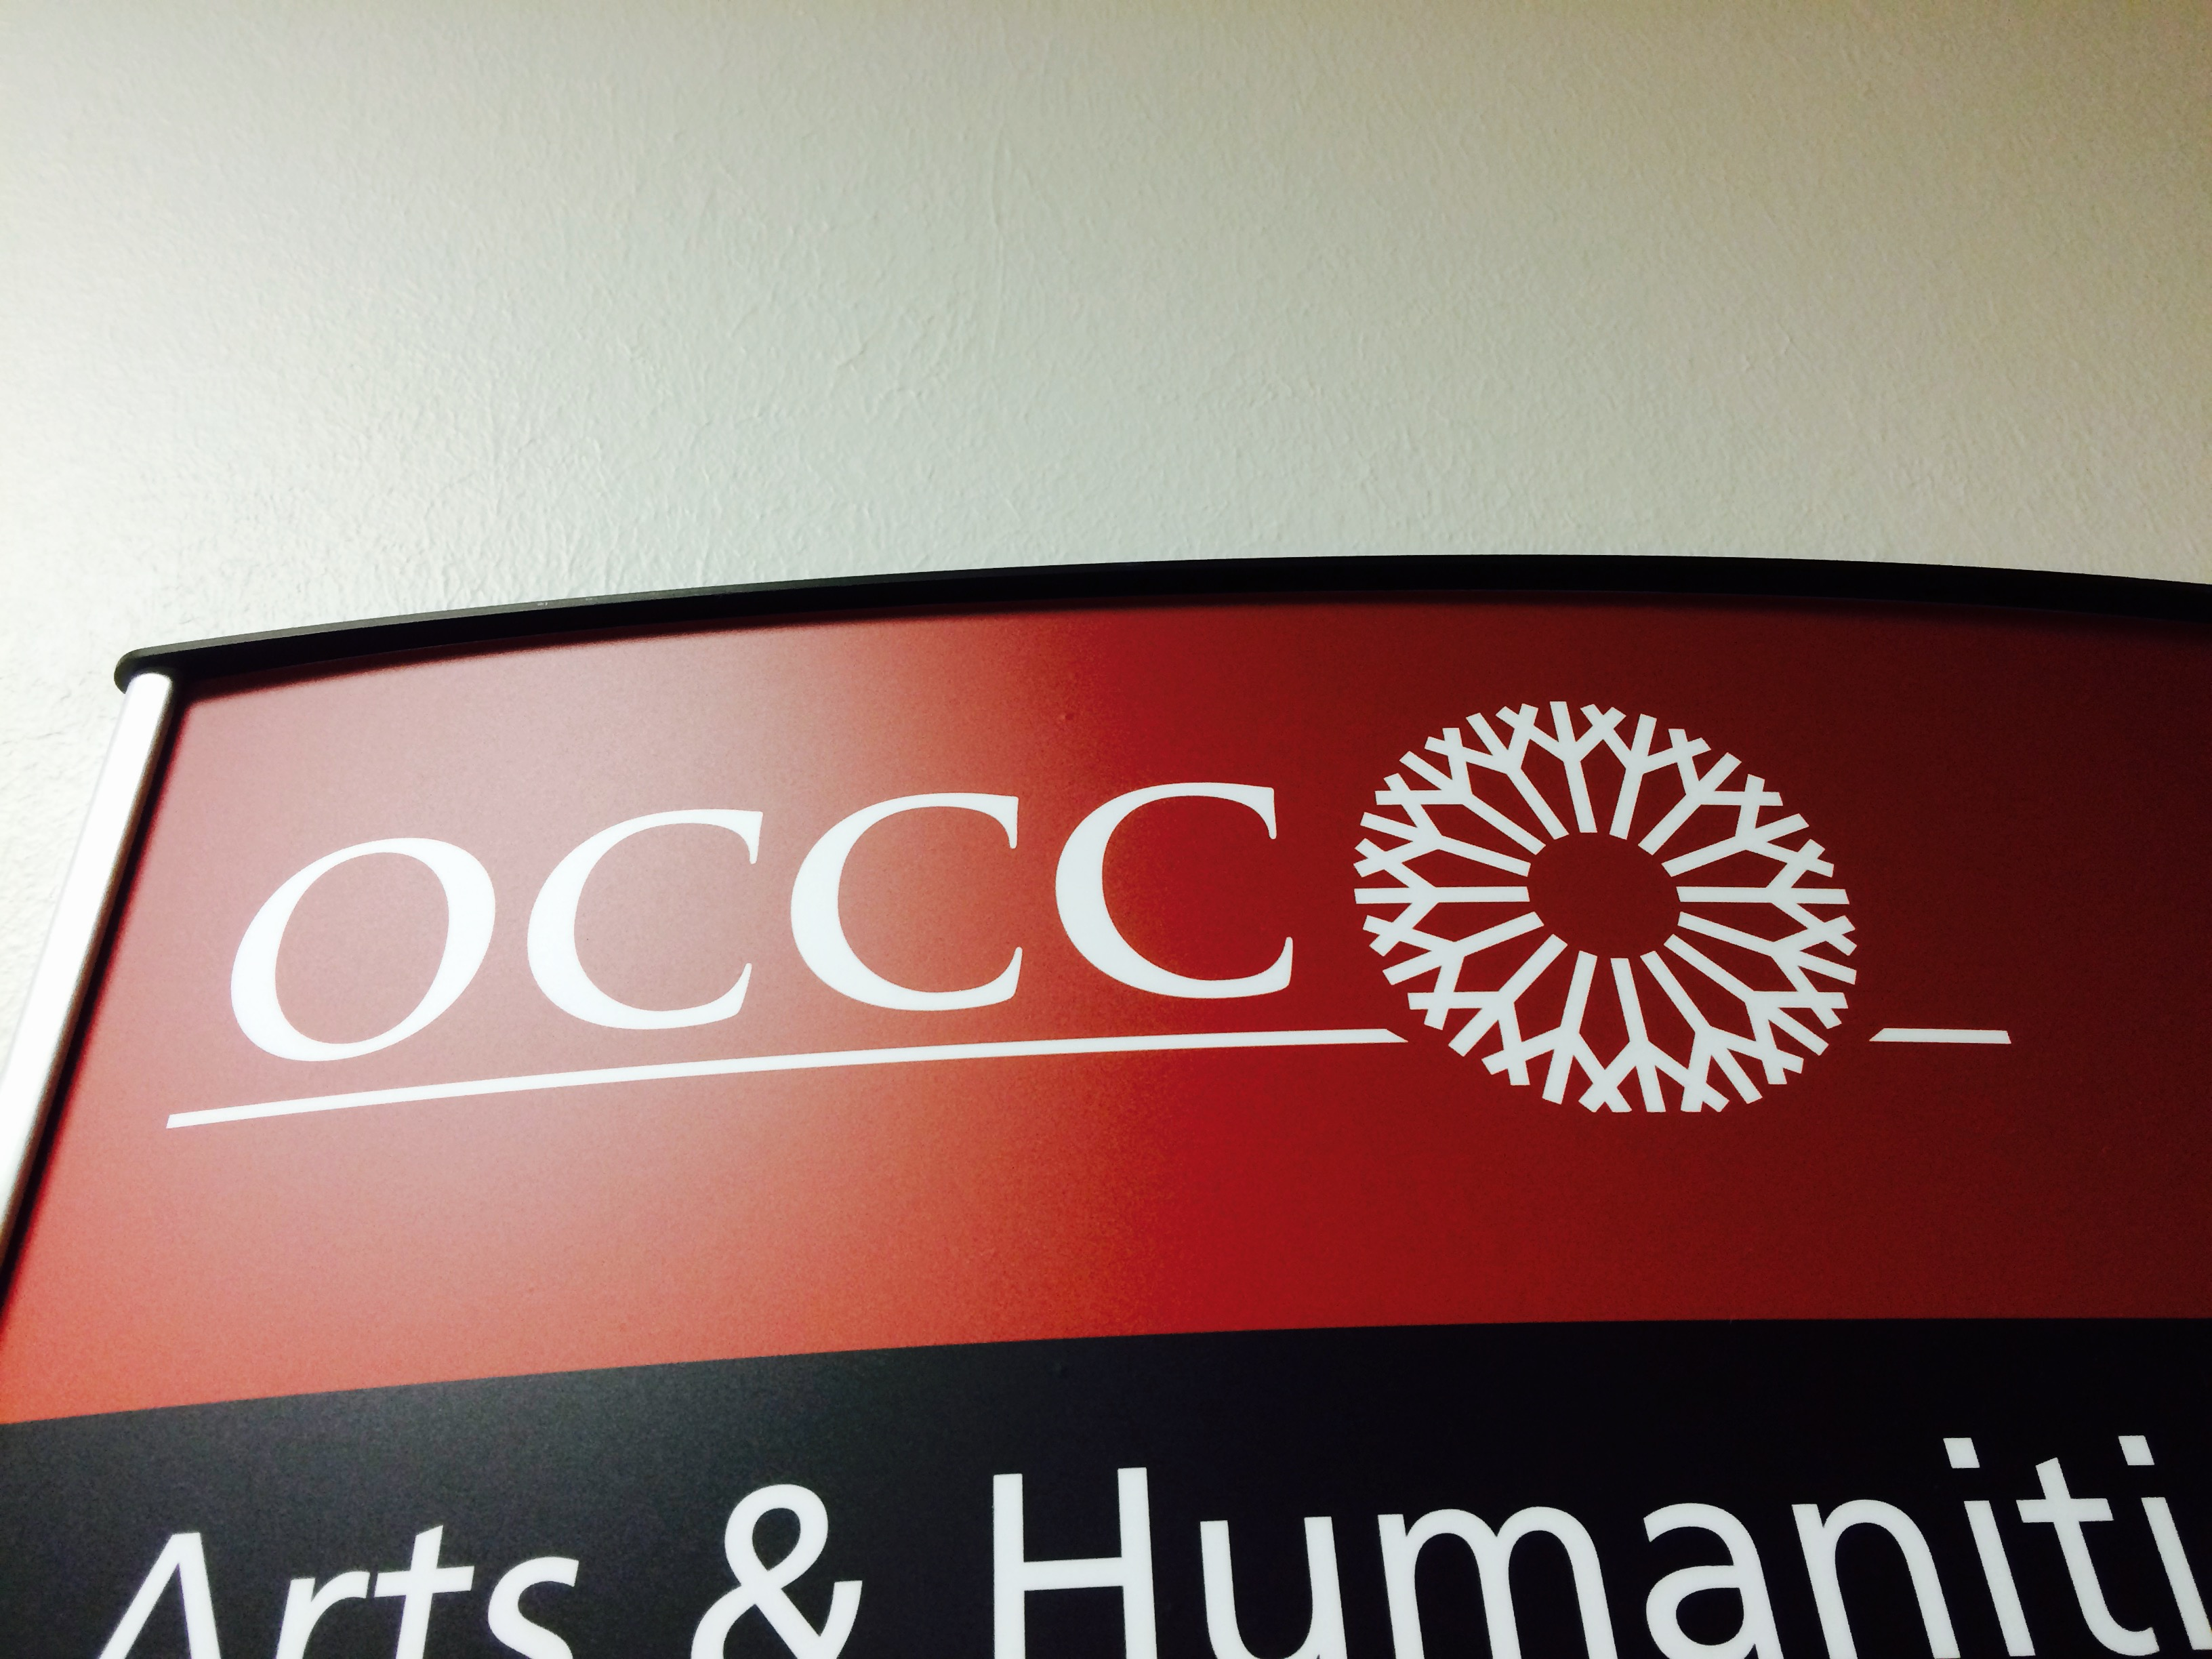 Survey shows OCCC students quite satisfied